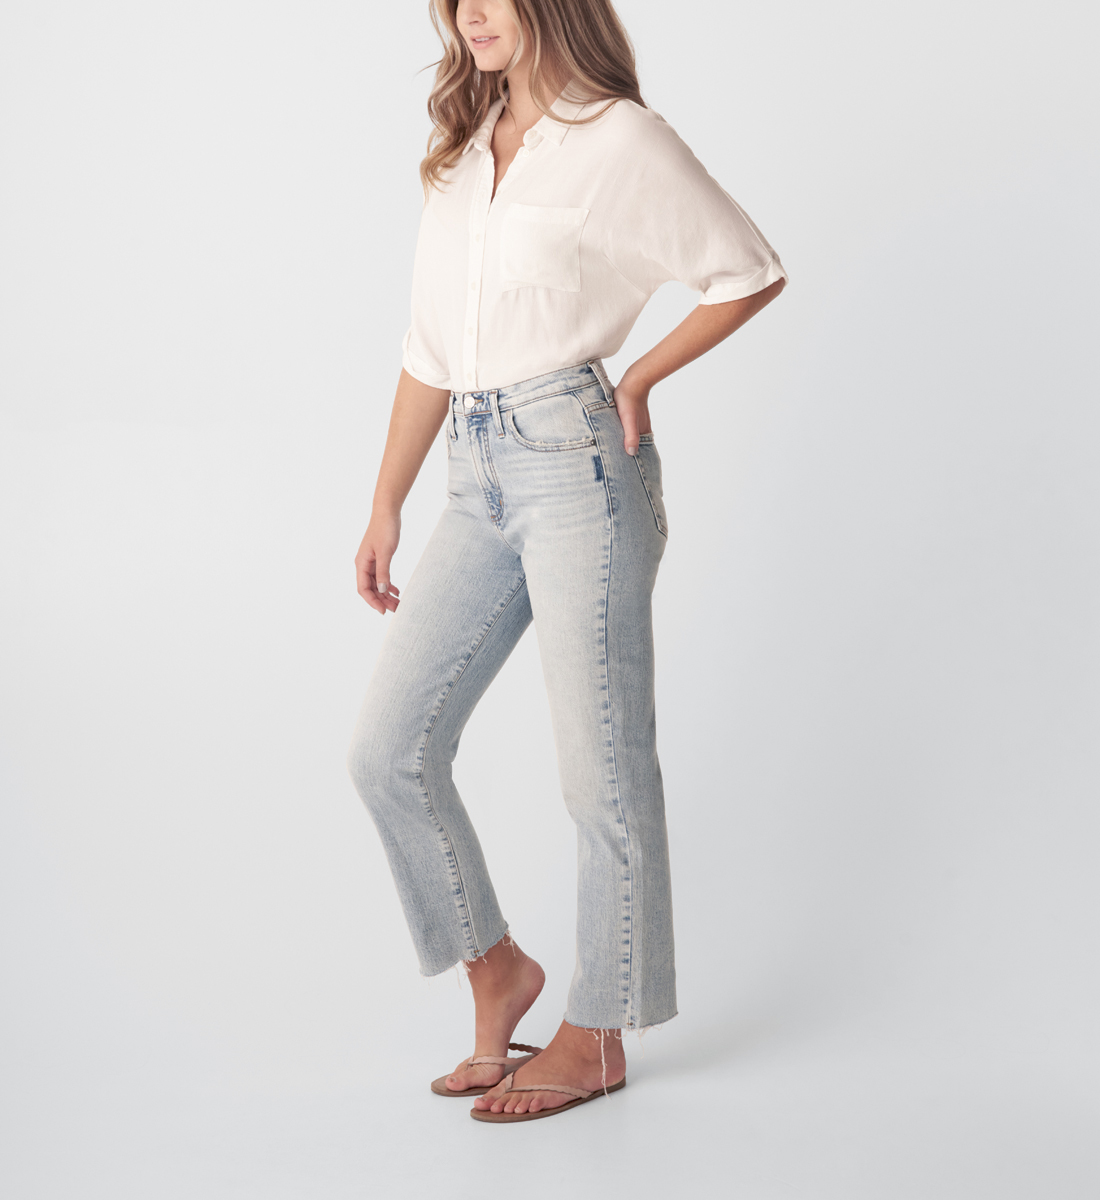 Highly Desirable High Rise Straight Leg Jeans Side